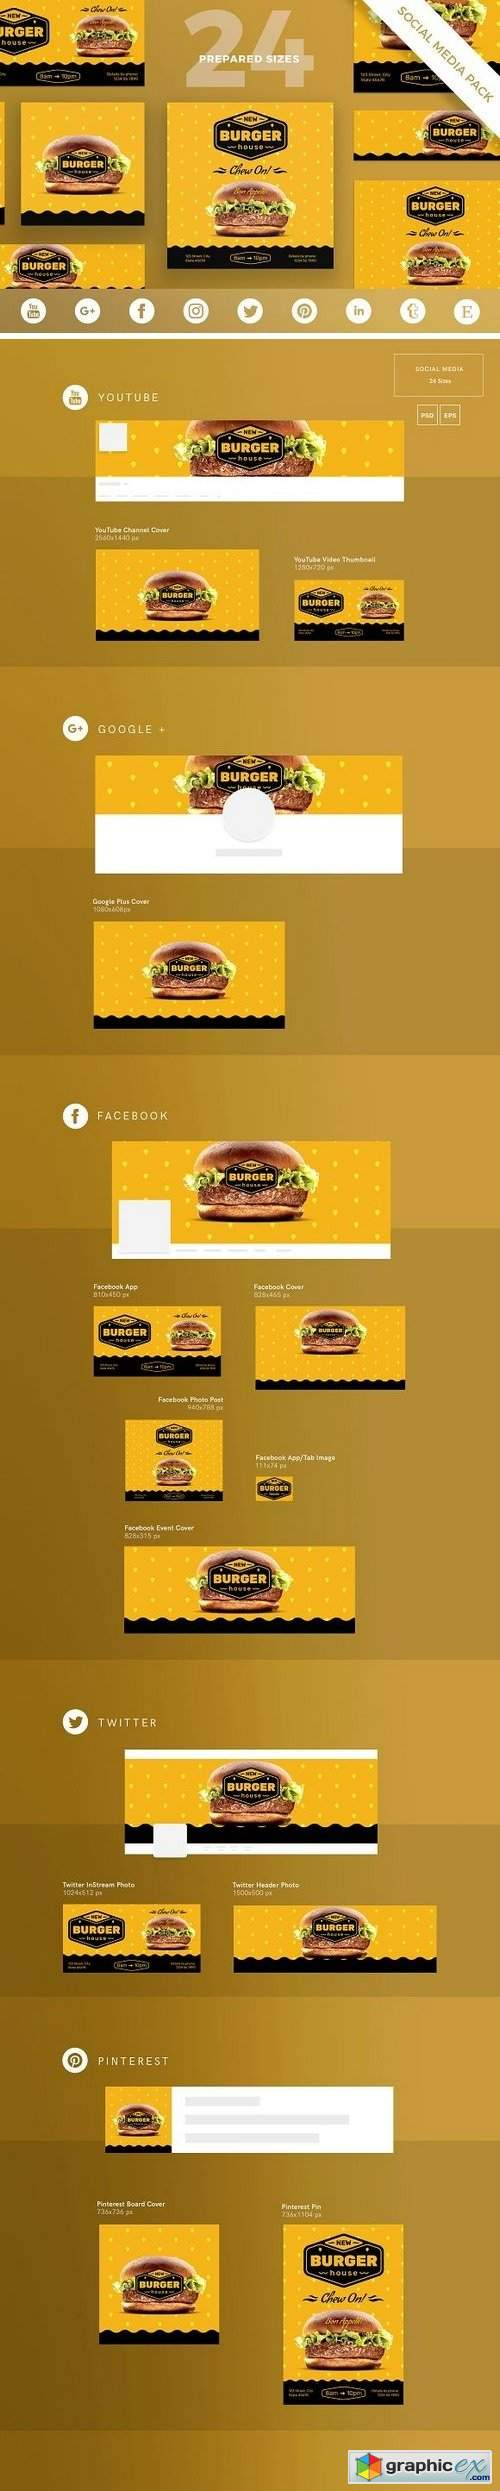 Burger House Social Media Pack